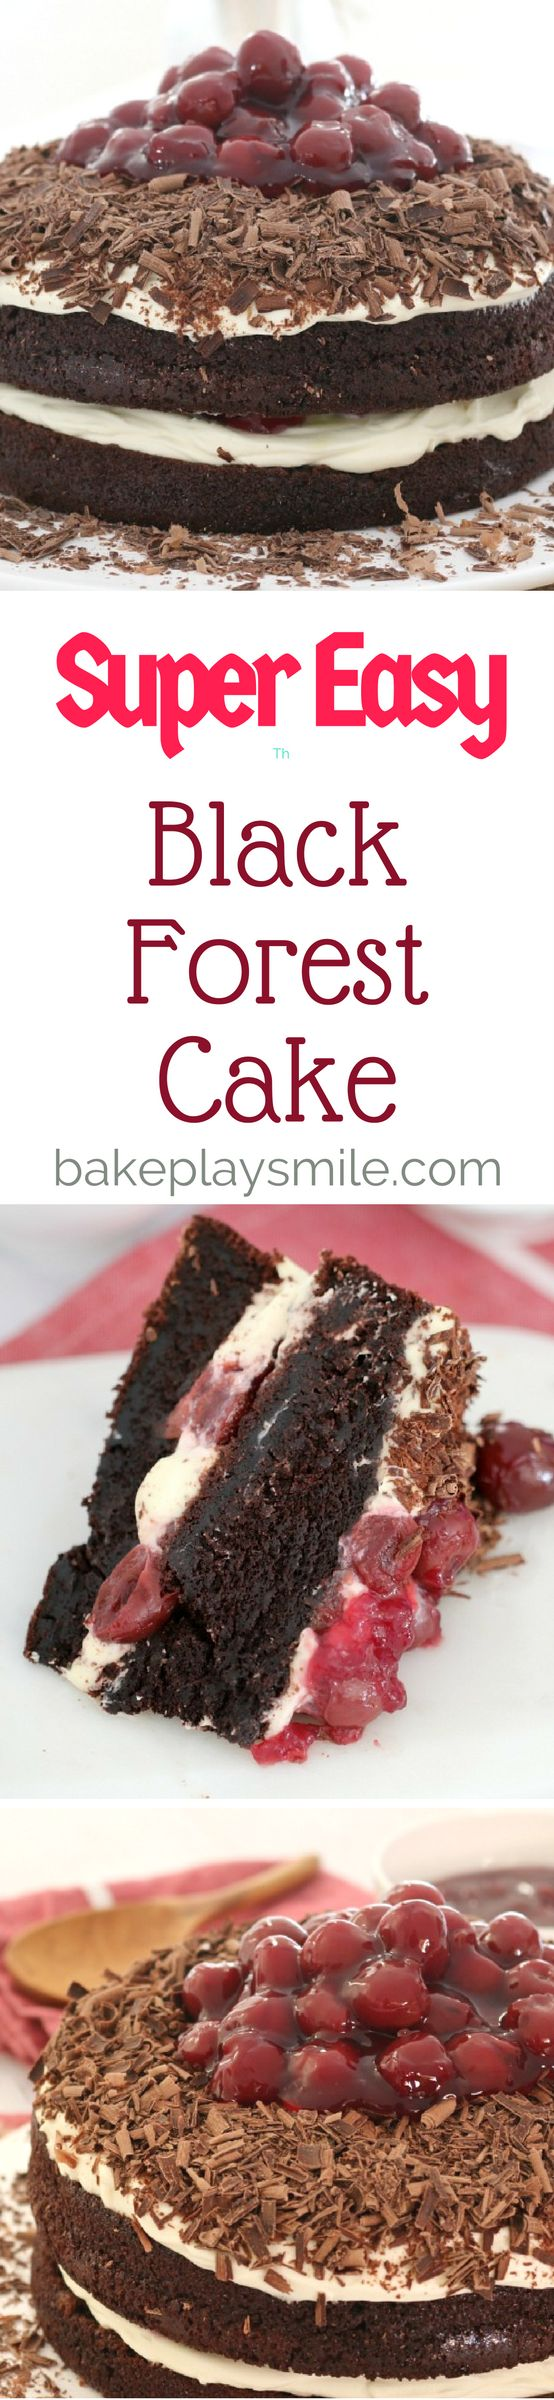 Easy Black Forest Cake  This Black Forest Cake is made with the most delicious layers of rich and fudgy chocolate cake, softly whipped cream, morello cherries, and of course, plenty of grated chocolate!   #easy #black #forest #cake #celebration #chocolate #cherry #conventional #thermomix #cream #layered